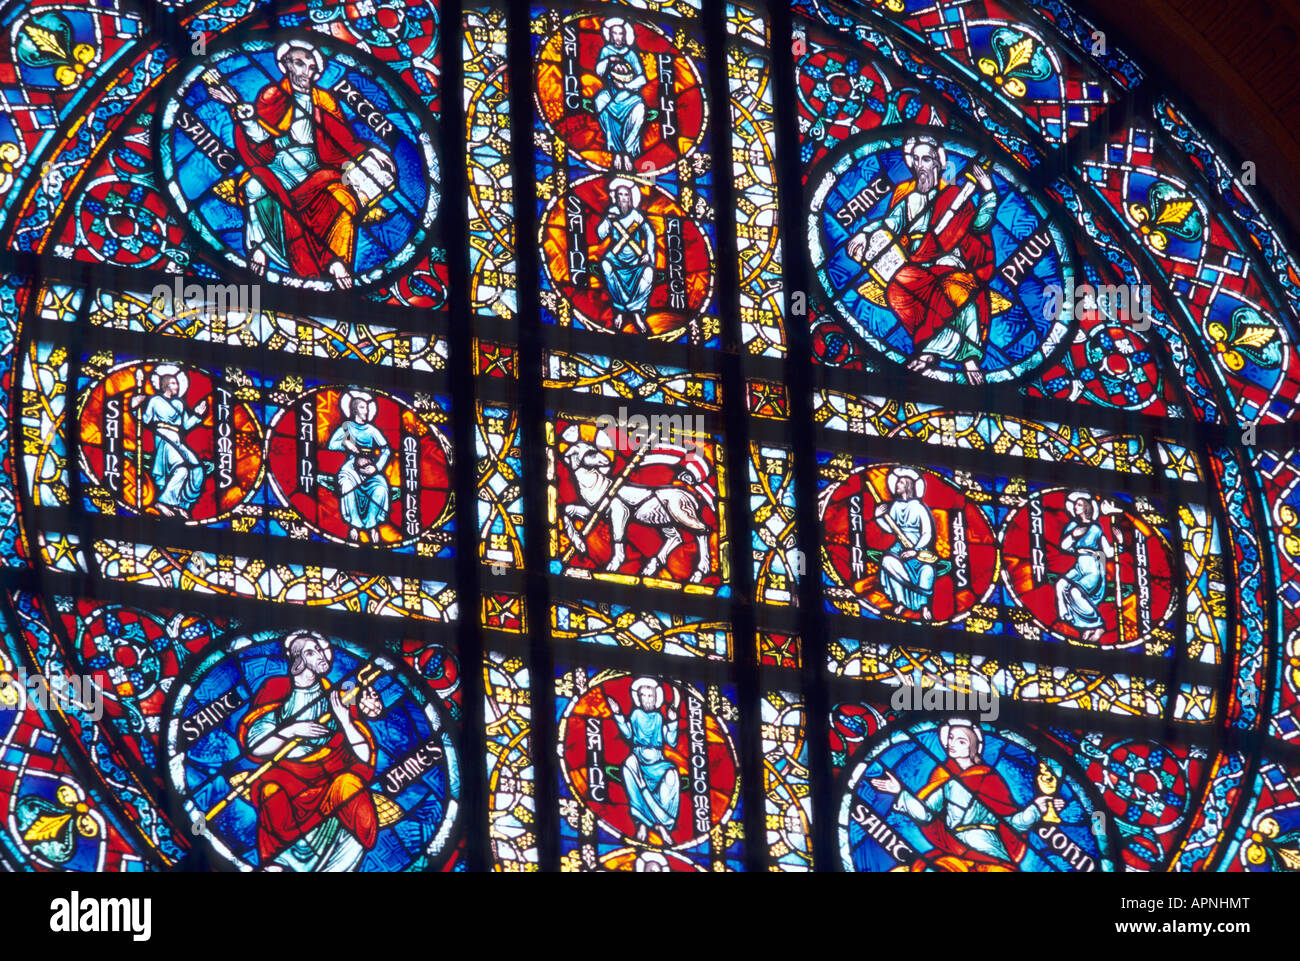 BEAUTIFUL STAINED GLASS WINDOW IN SAINT PAUL CATHEDRAL, ST